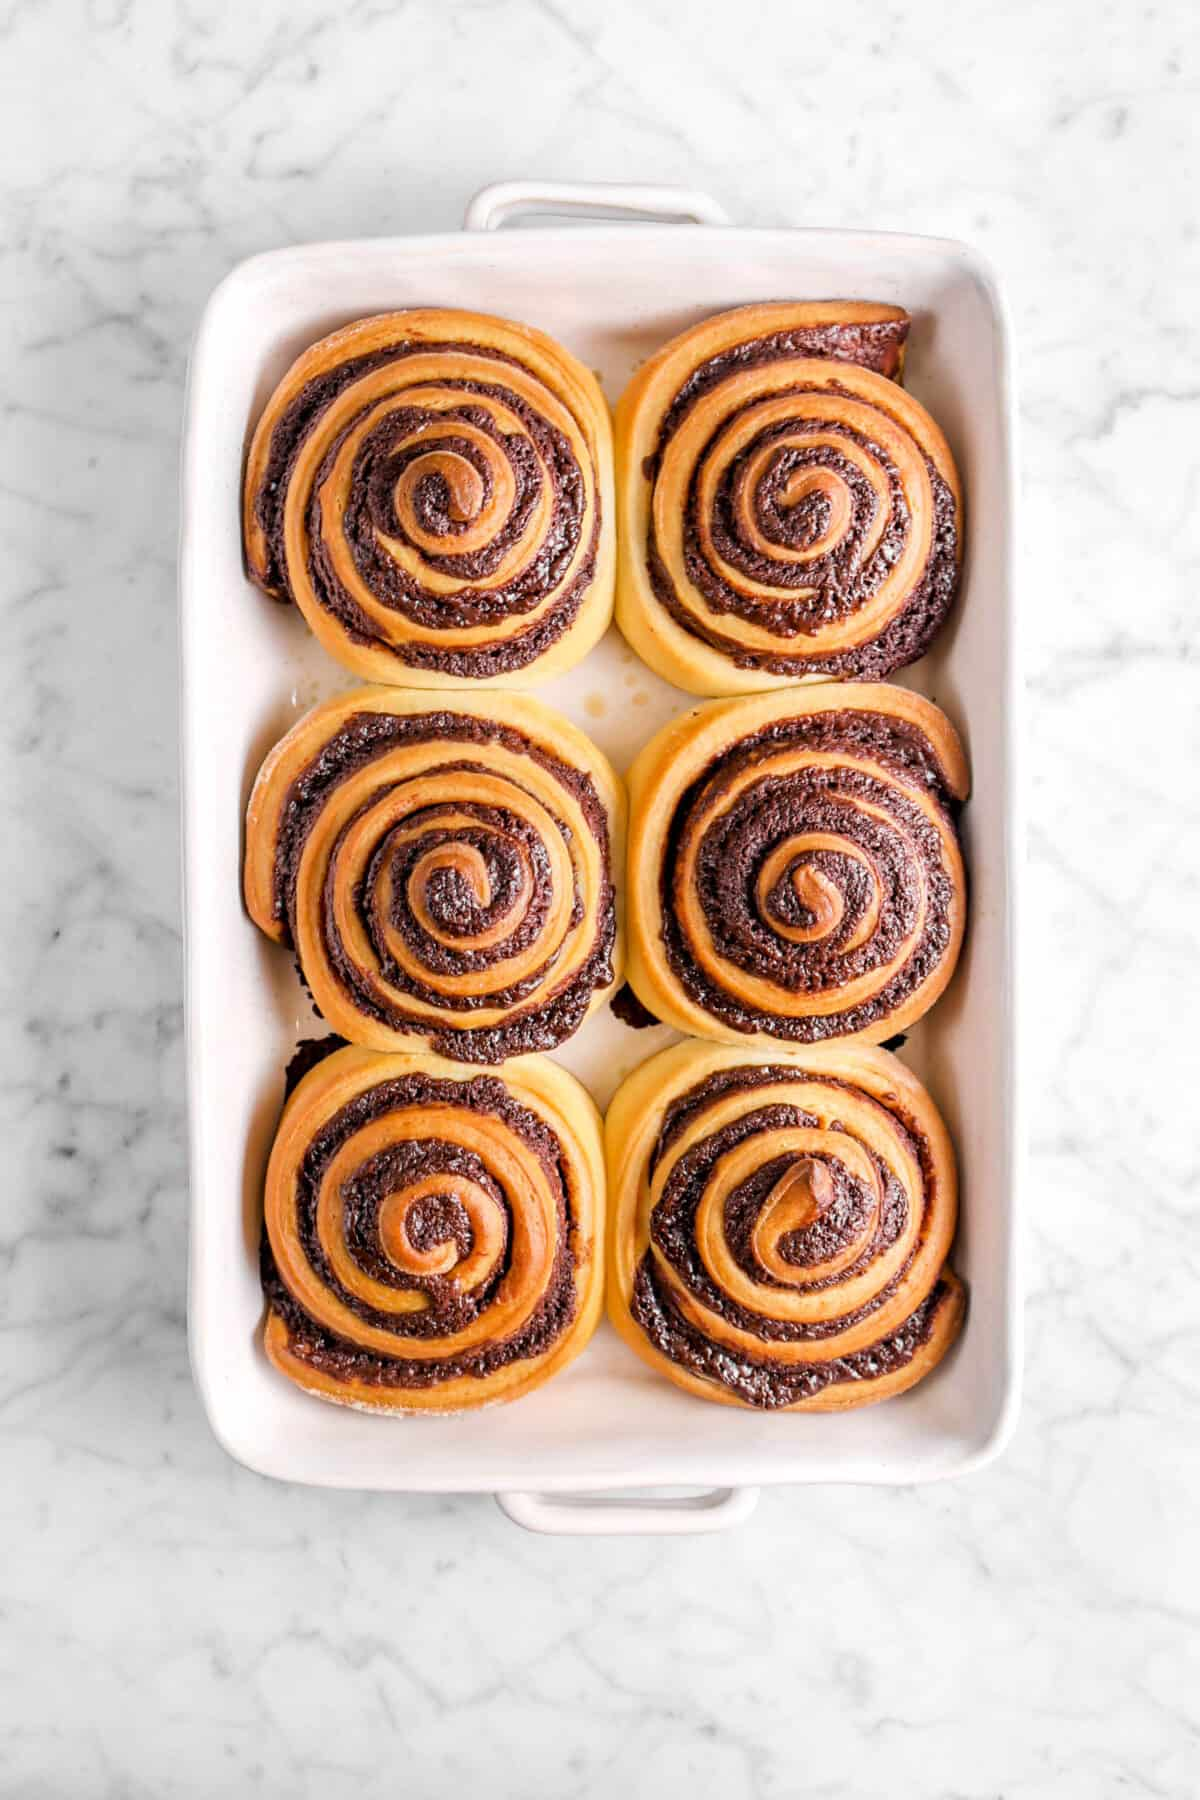 six baked chocolate sweet rolls in white casserole